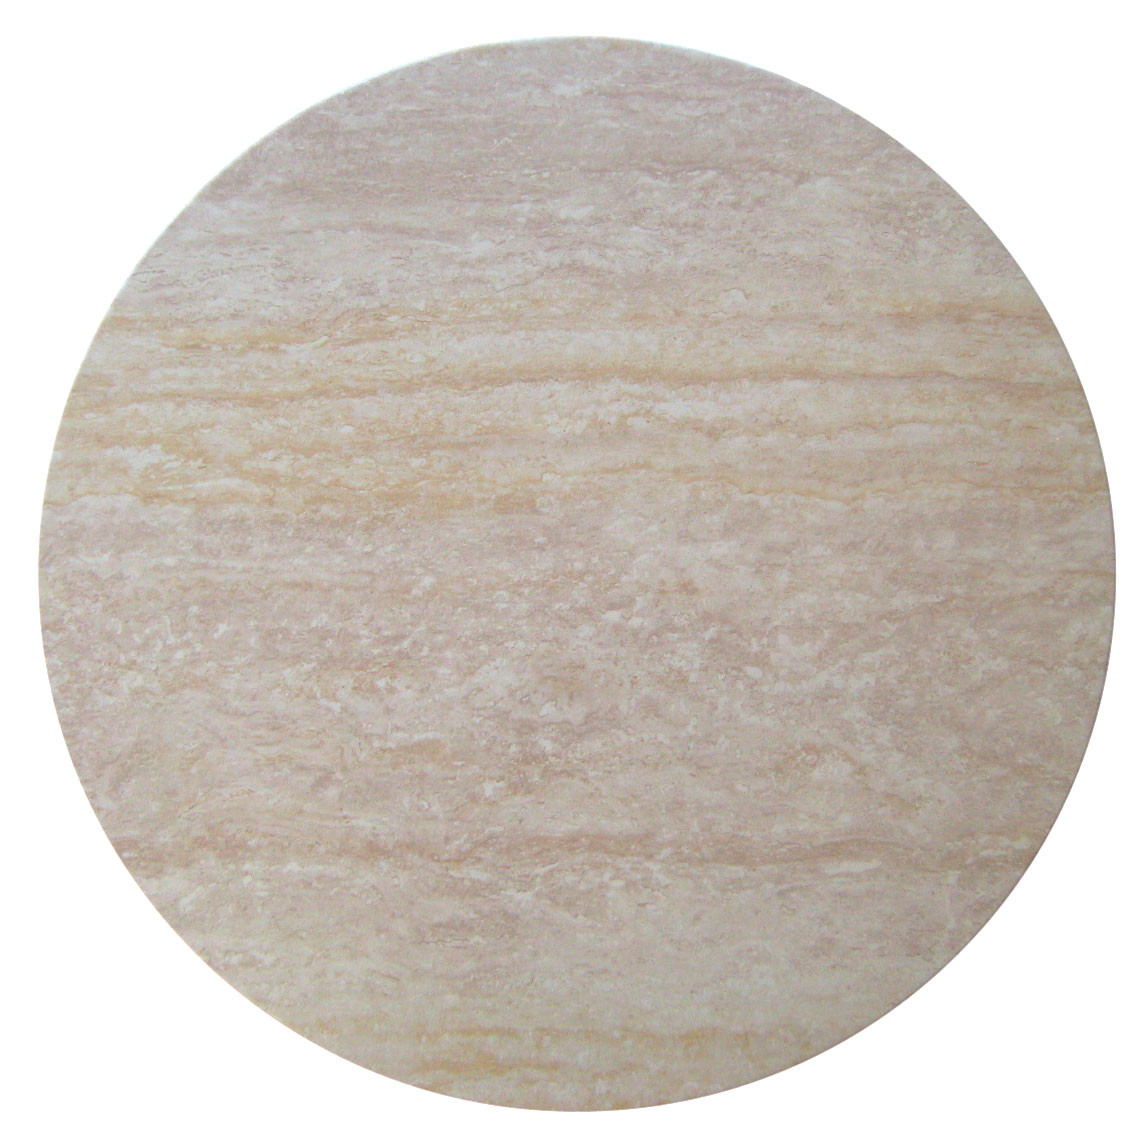 NEW Travertine Round Resin Table Top eBay : 1 from www.ebay.com.au size 1148 x 1148 jpeg 238kB